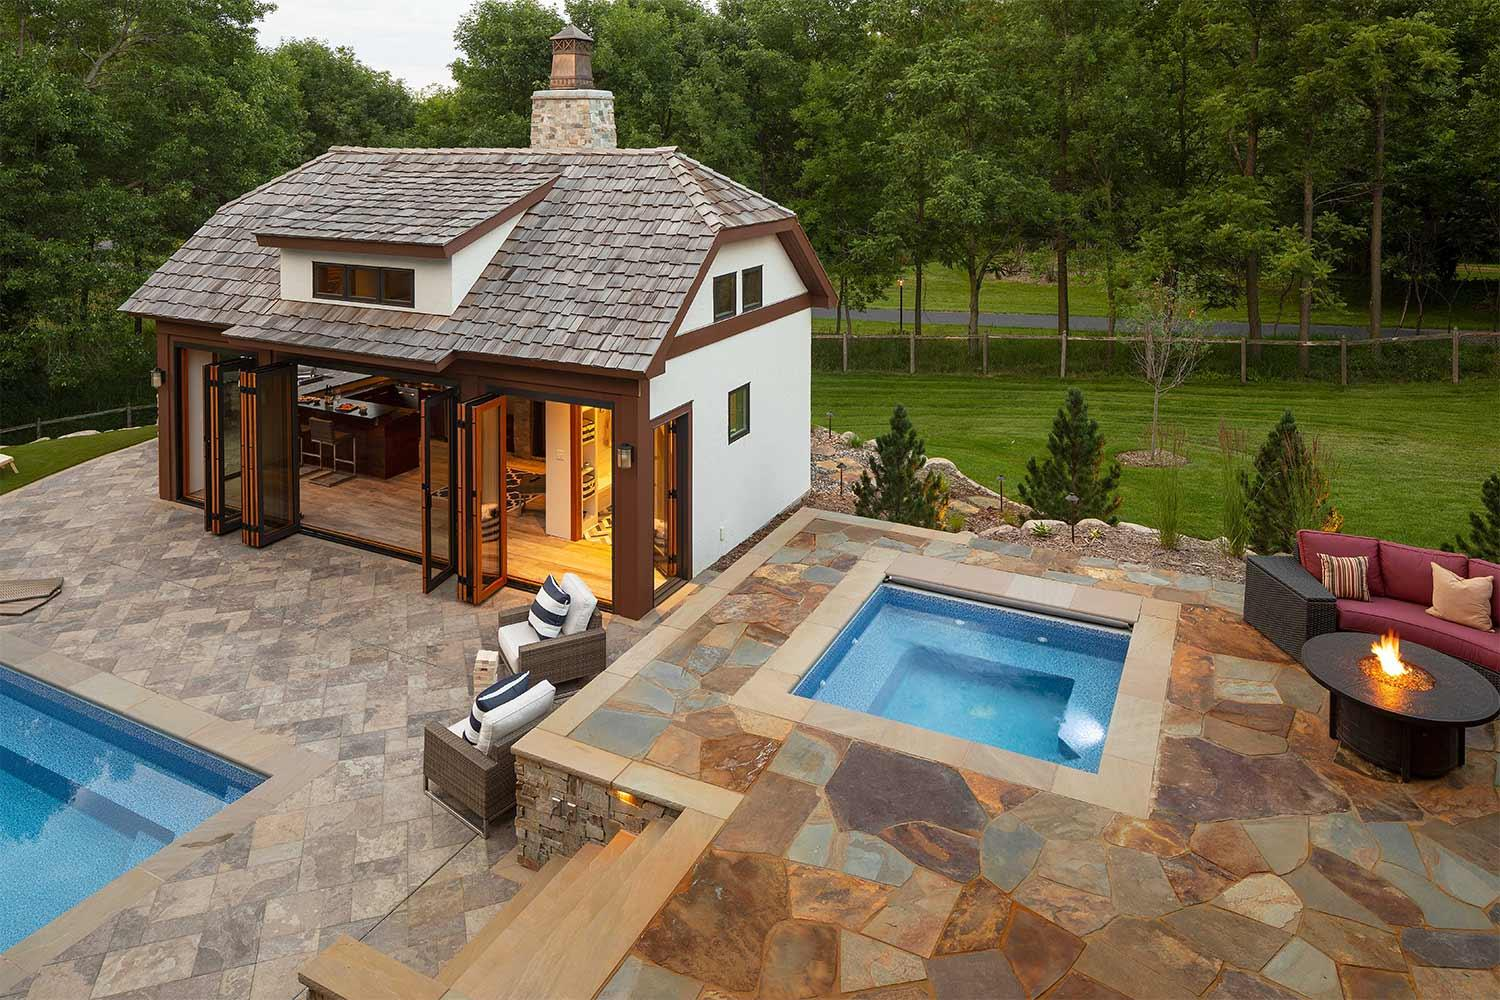 Pool house, hot tub, and natural stone patio and pool deck.